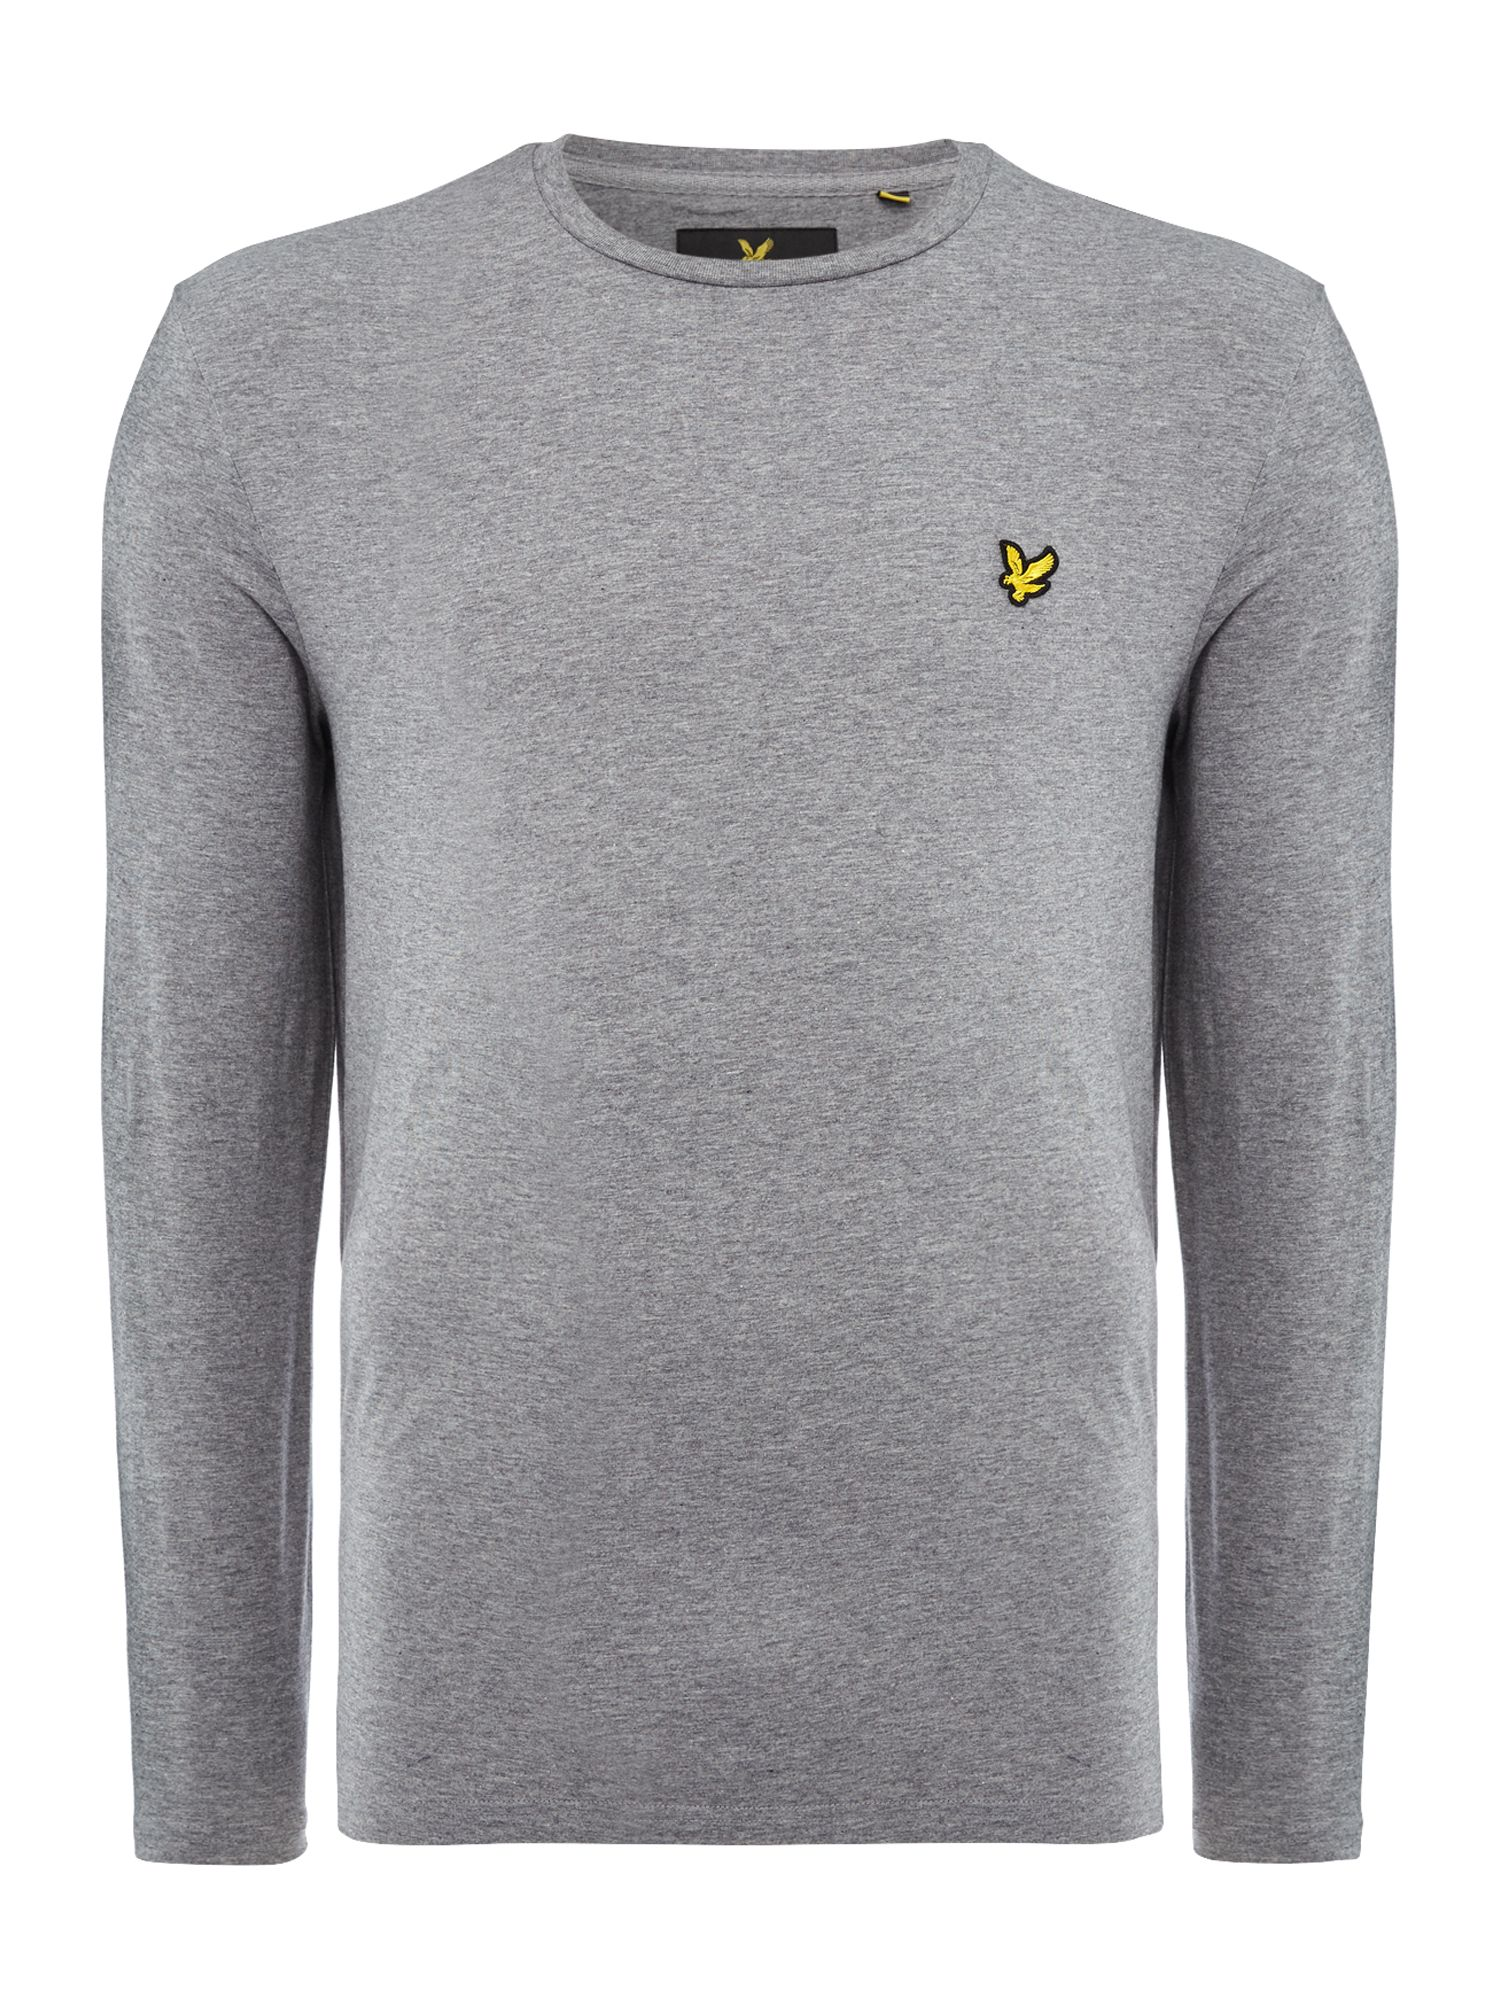 Men's Lyle and Scott Long Sleeve Classic Crew Neck T-Shirt, Mid Grey Marl